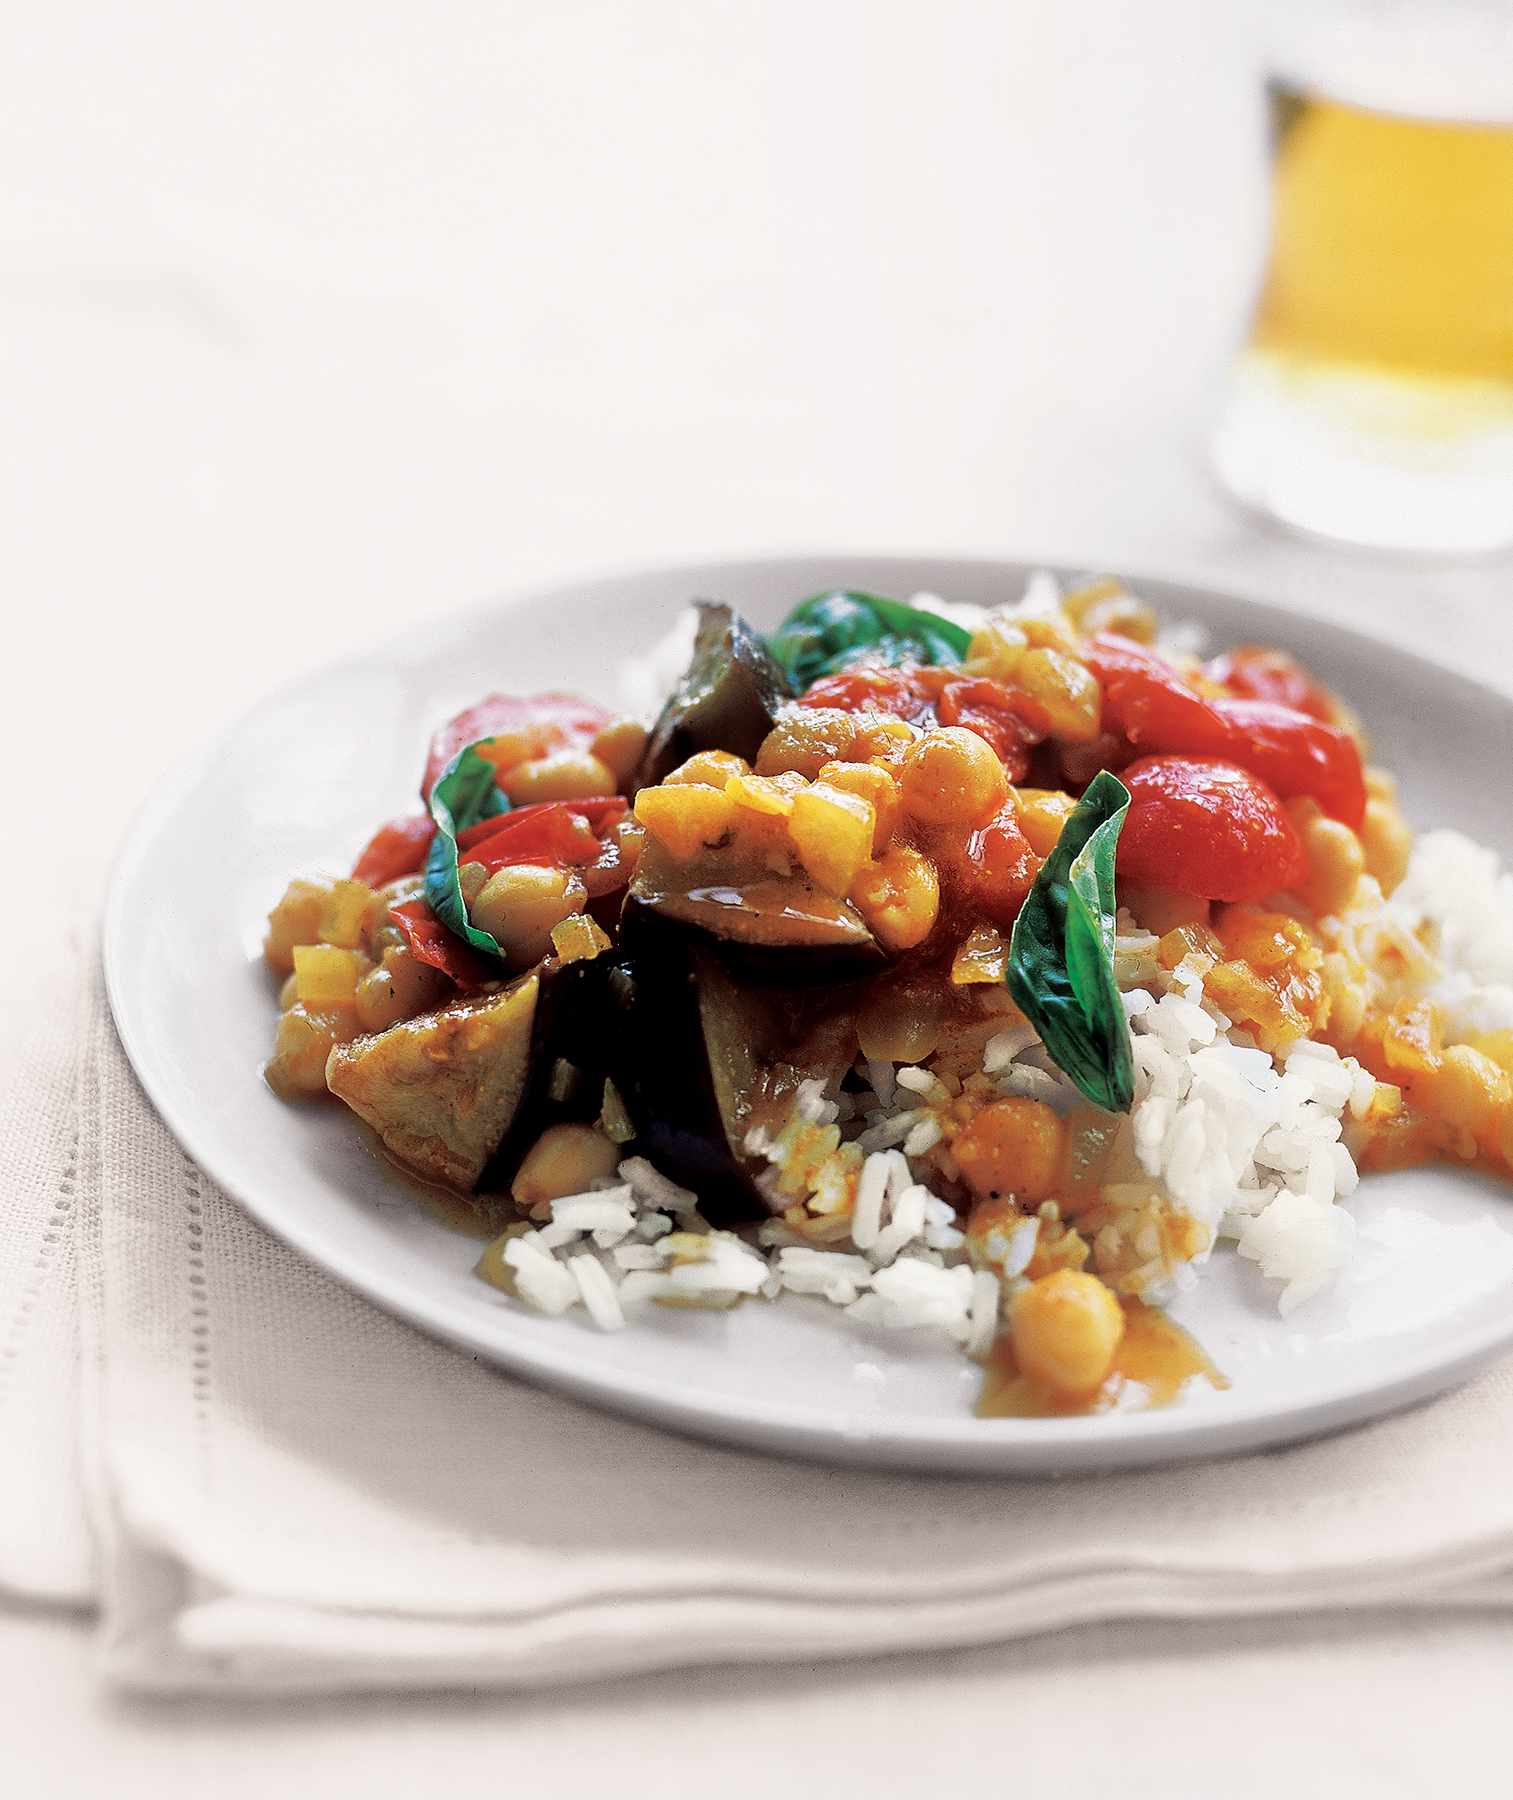 Curried Eggplant With Tomatoes and Basil Recipe | Real Simple